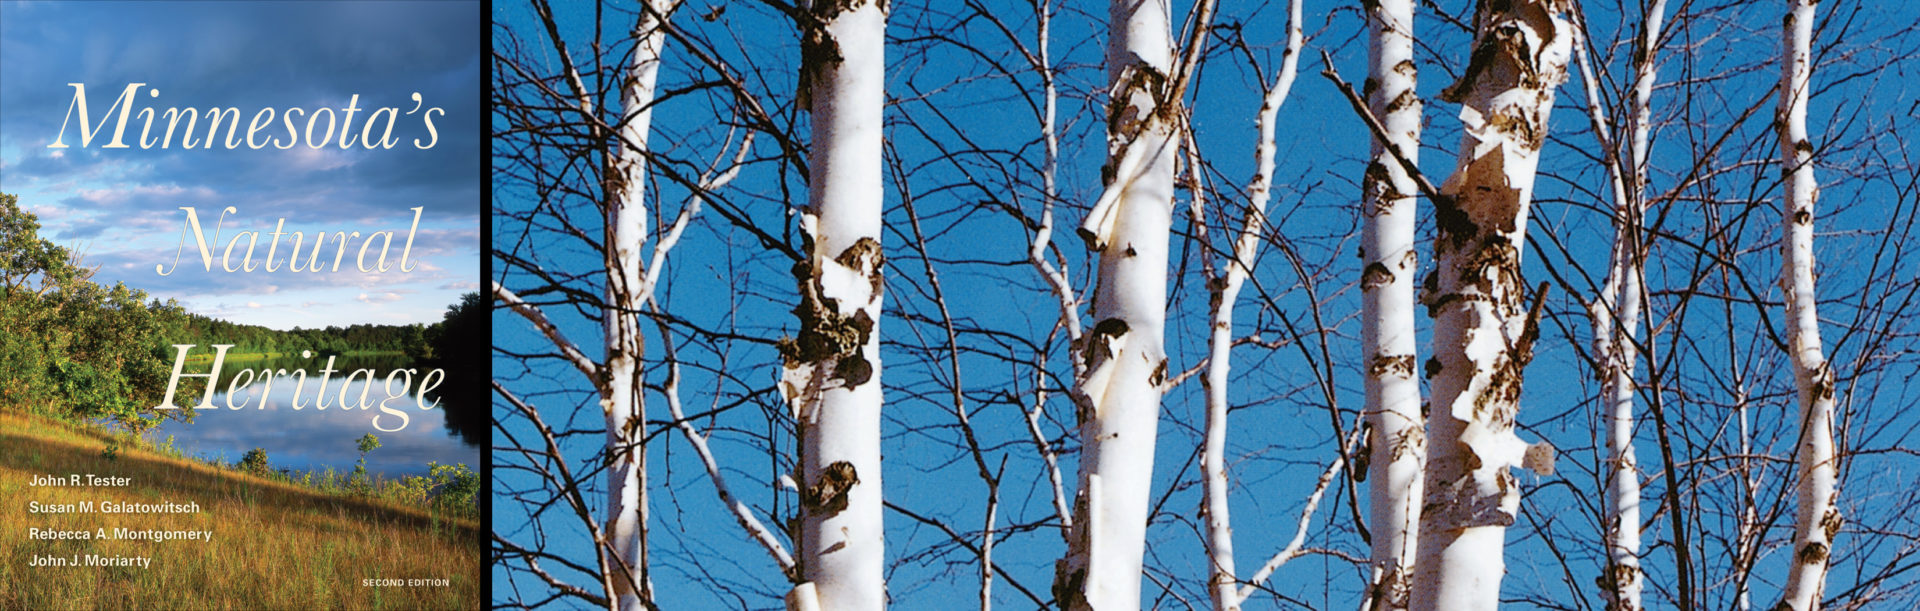 Minnesota's Natural Heritage, Second Edition Book Cover with birch trees